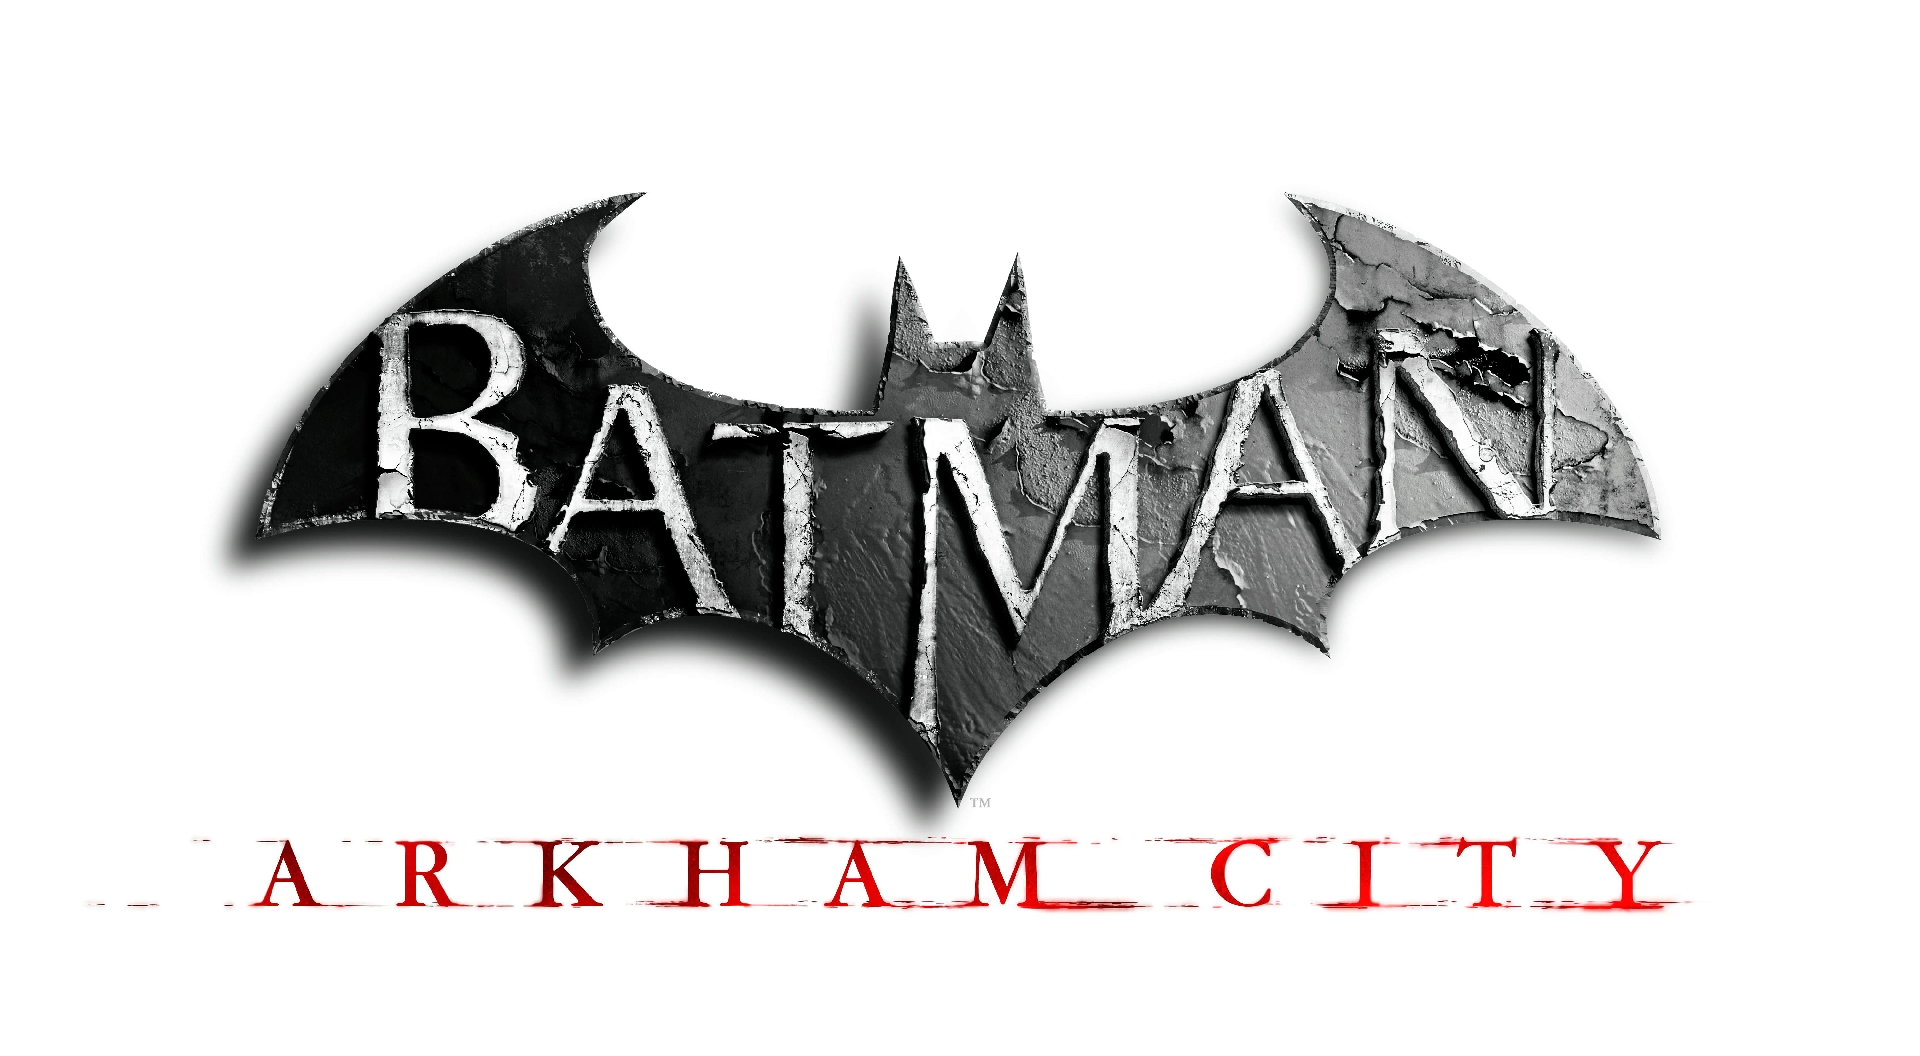 Vídeo gameplay de Batman: Arkham City, planeando por la ciudad